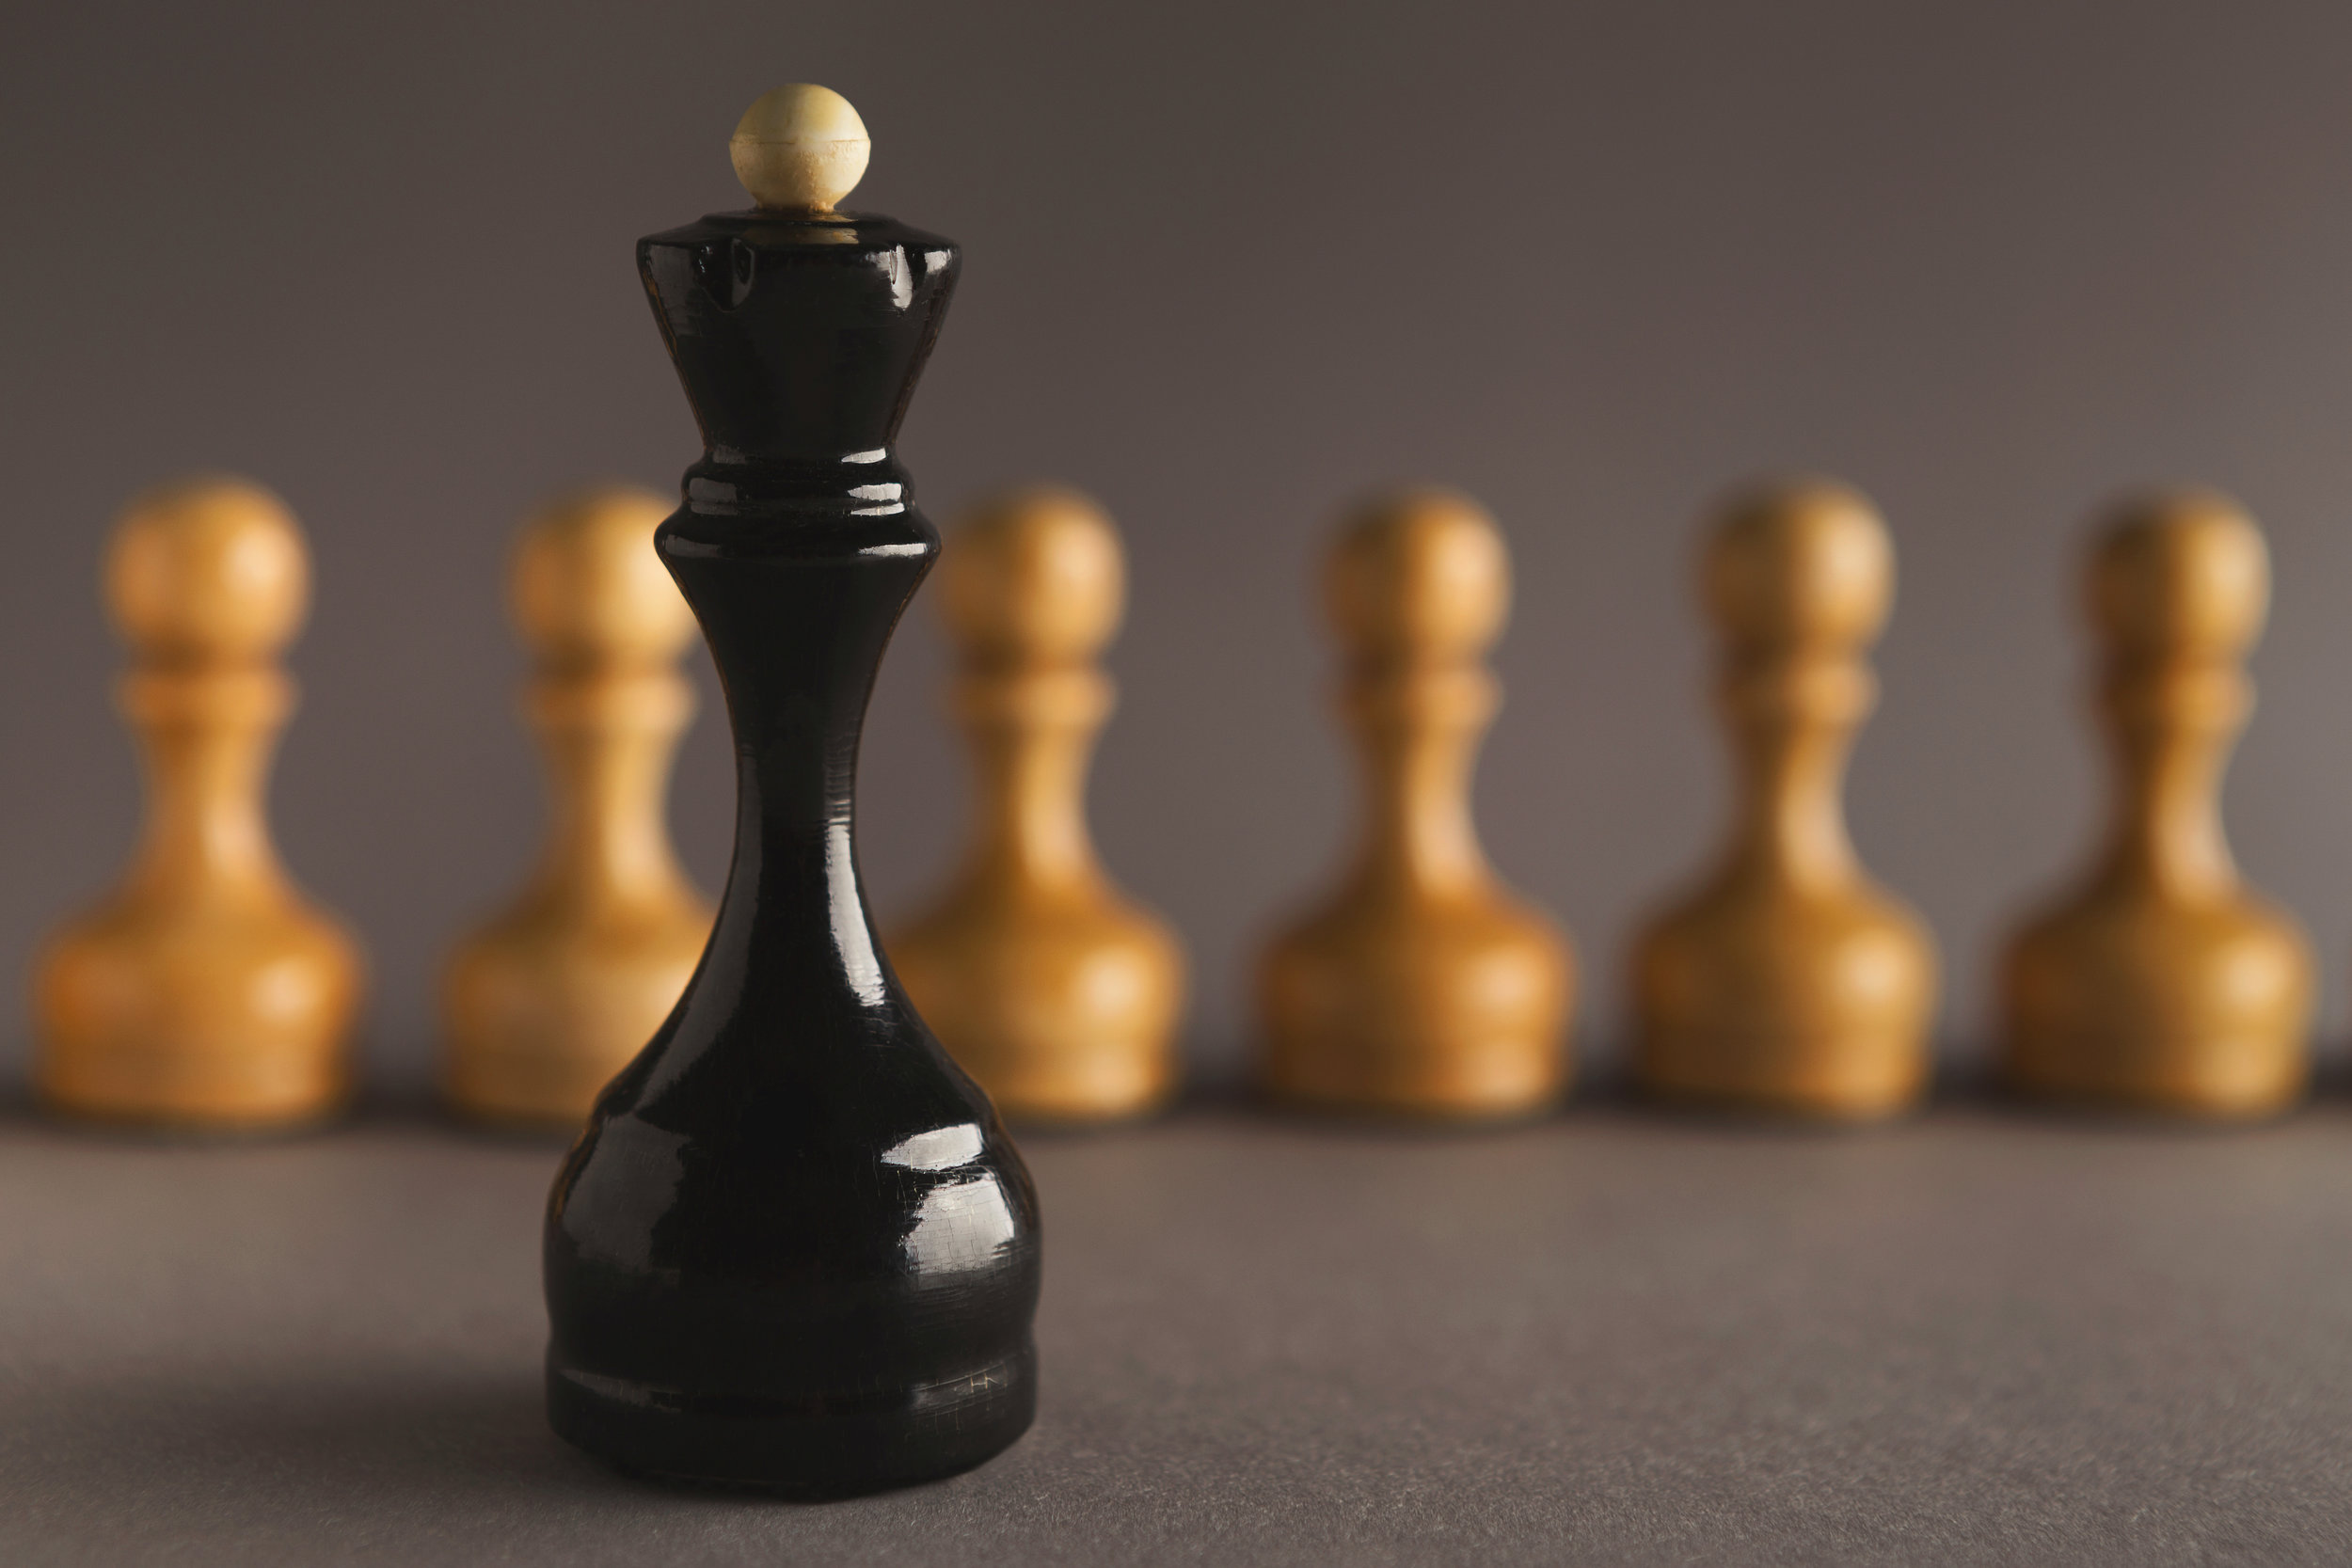 abstract-leadership-business-concept-with-chess-T5ZWEM9.jpg